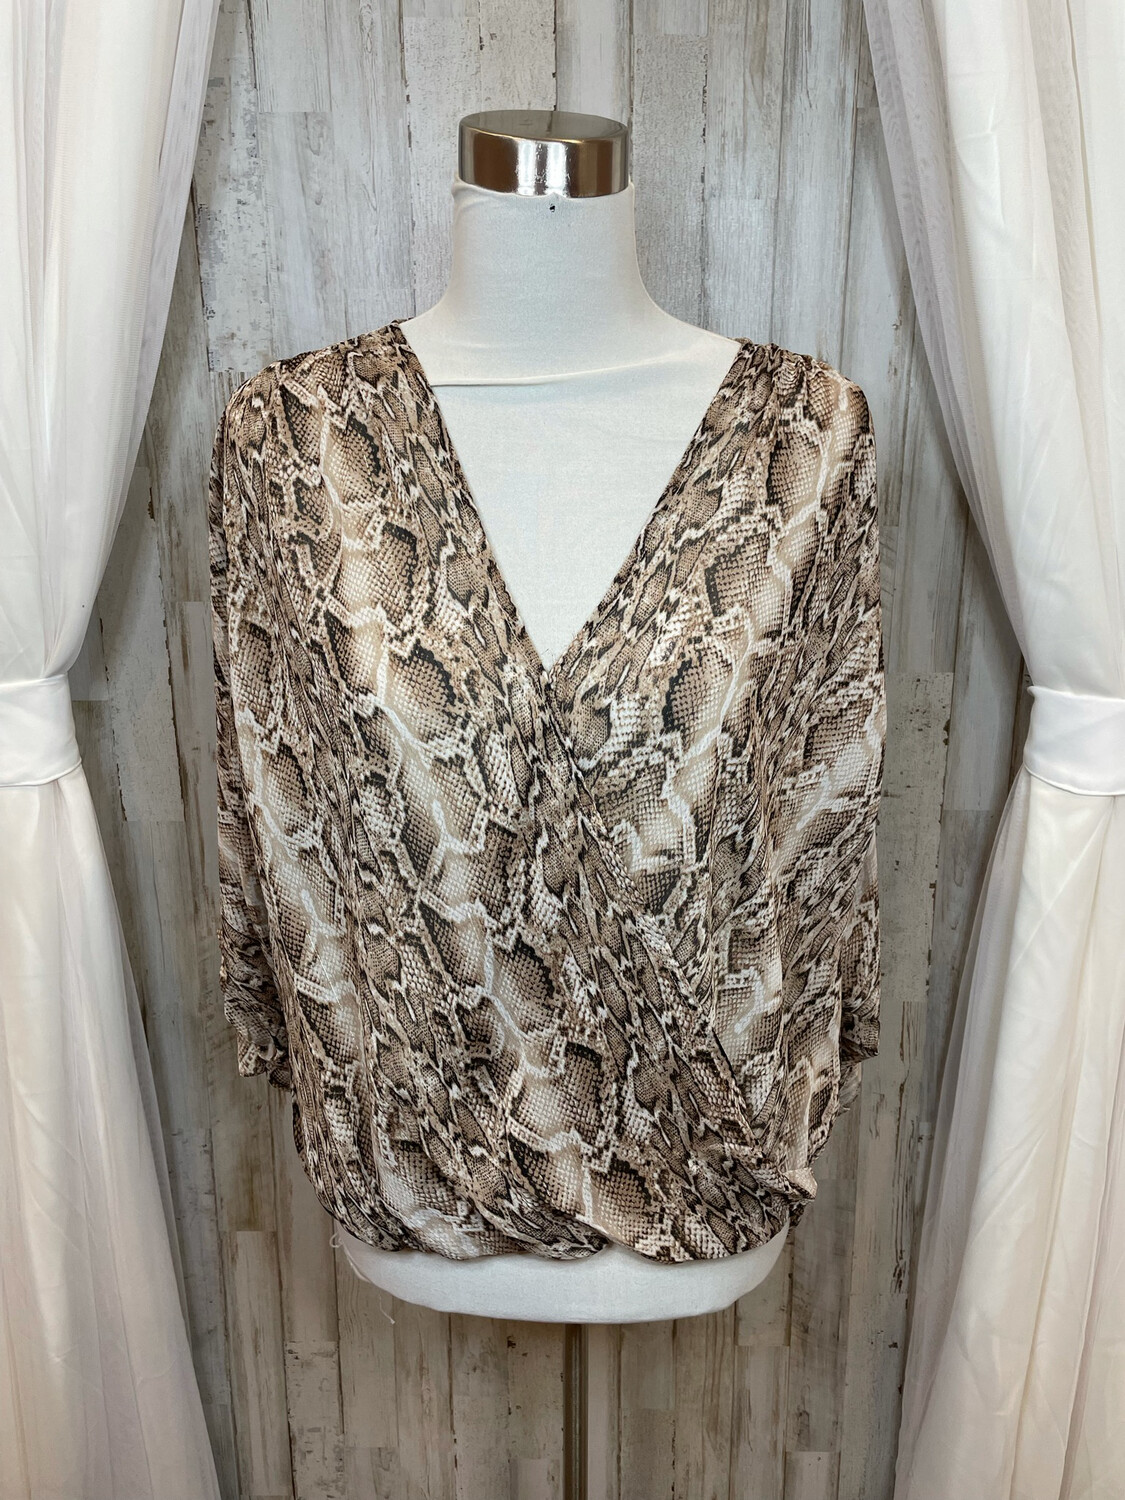 Lovestitch Brown Snakeskin Wrap Top w/Gold Accent - S